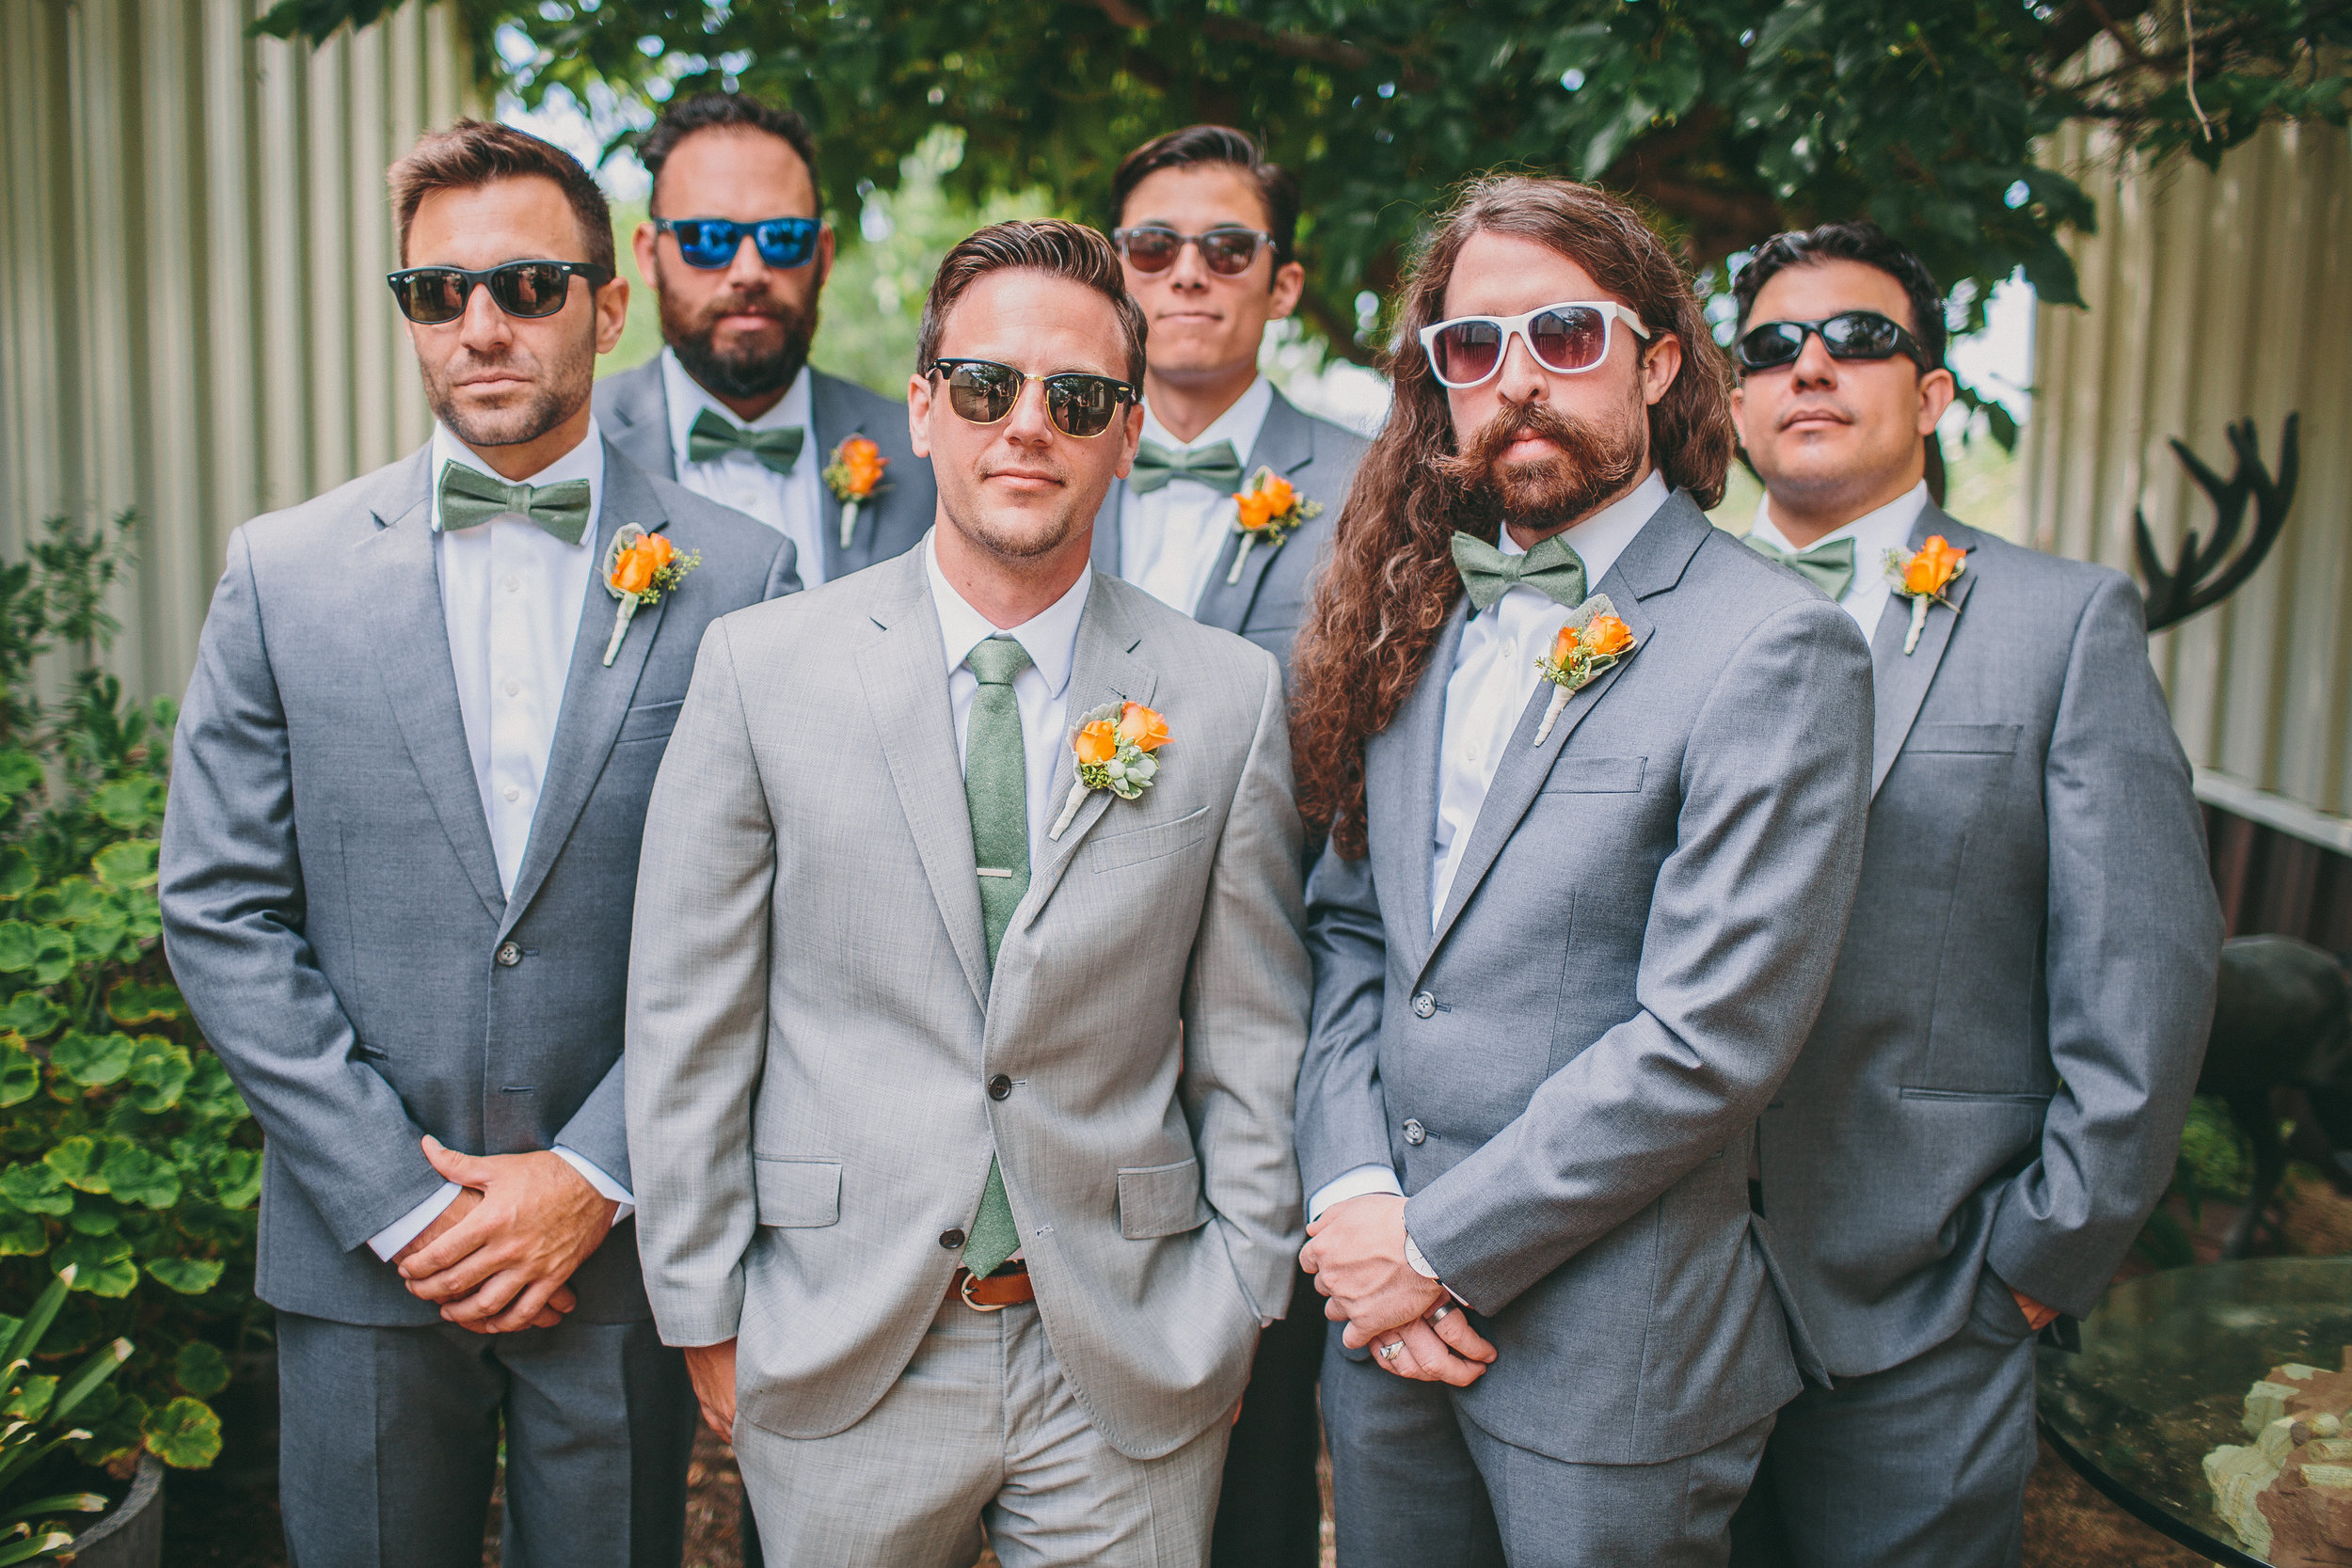 Gray Groomsmen Suits and Bowties | Michelle Garibay Events